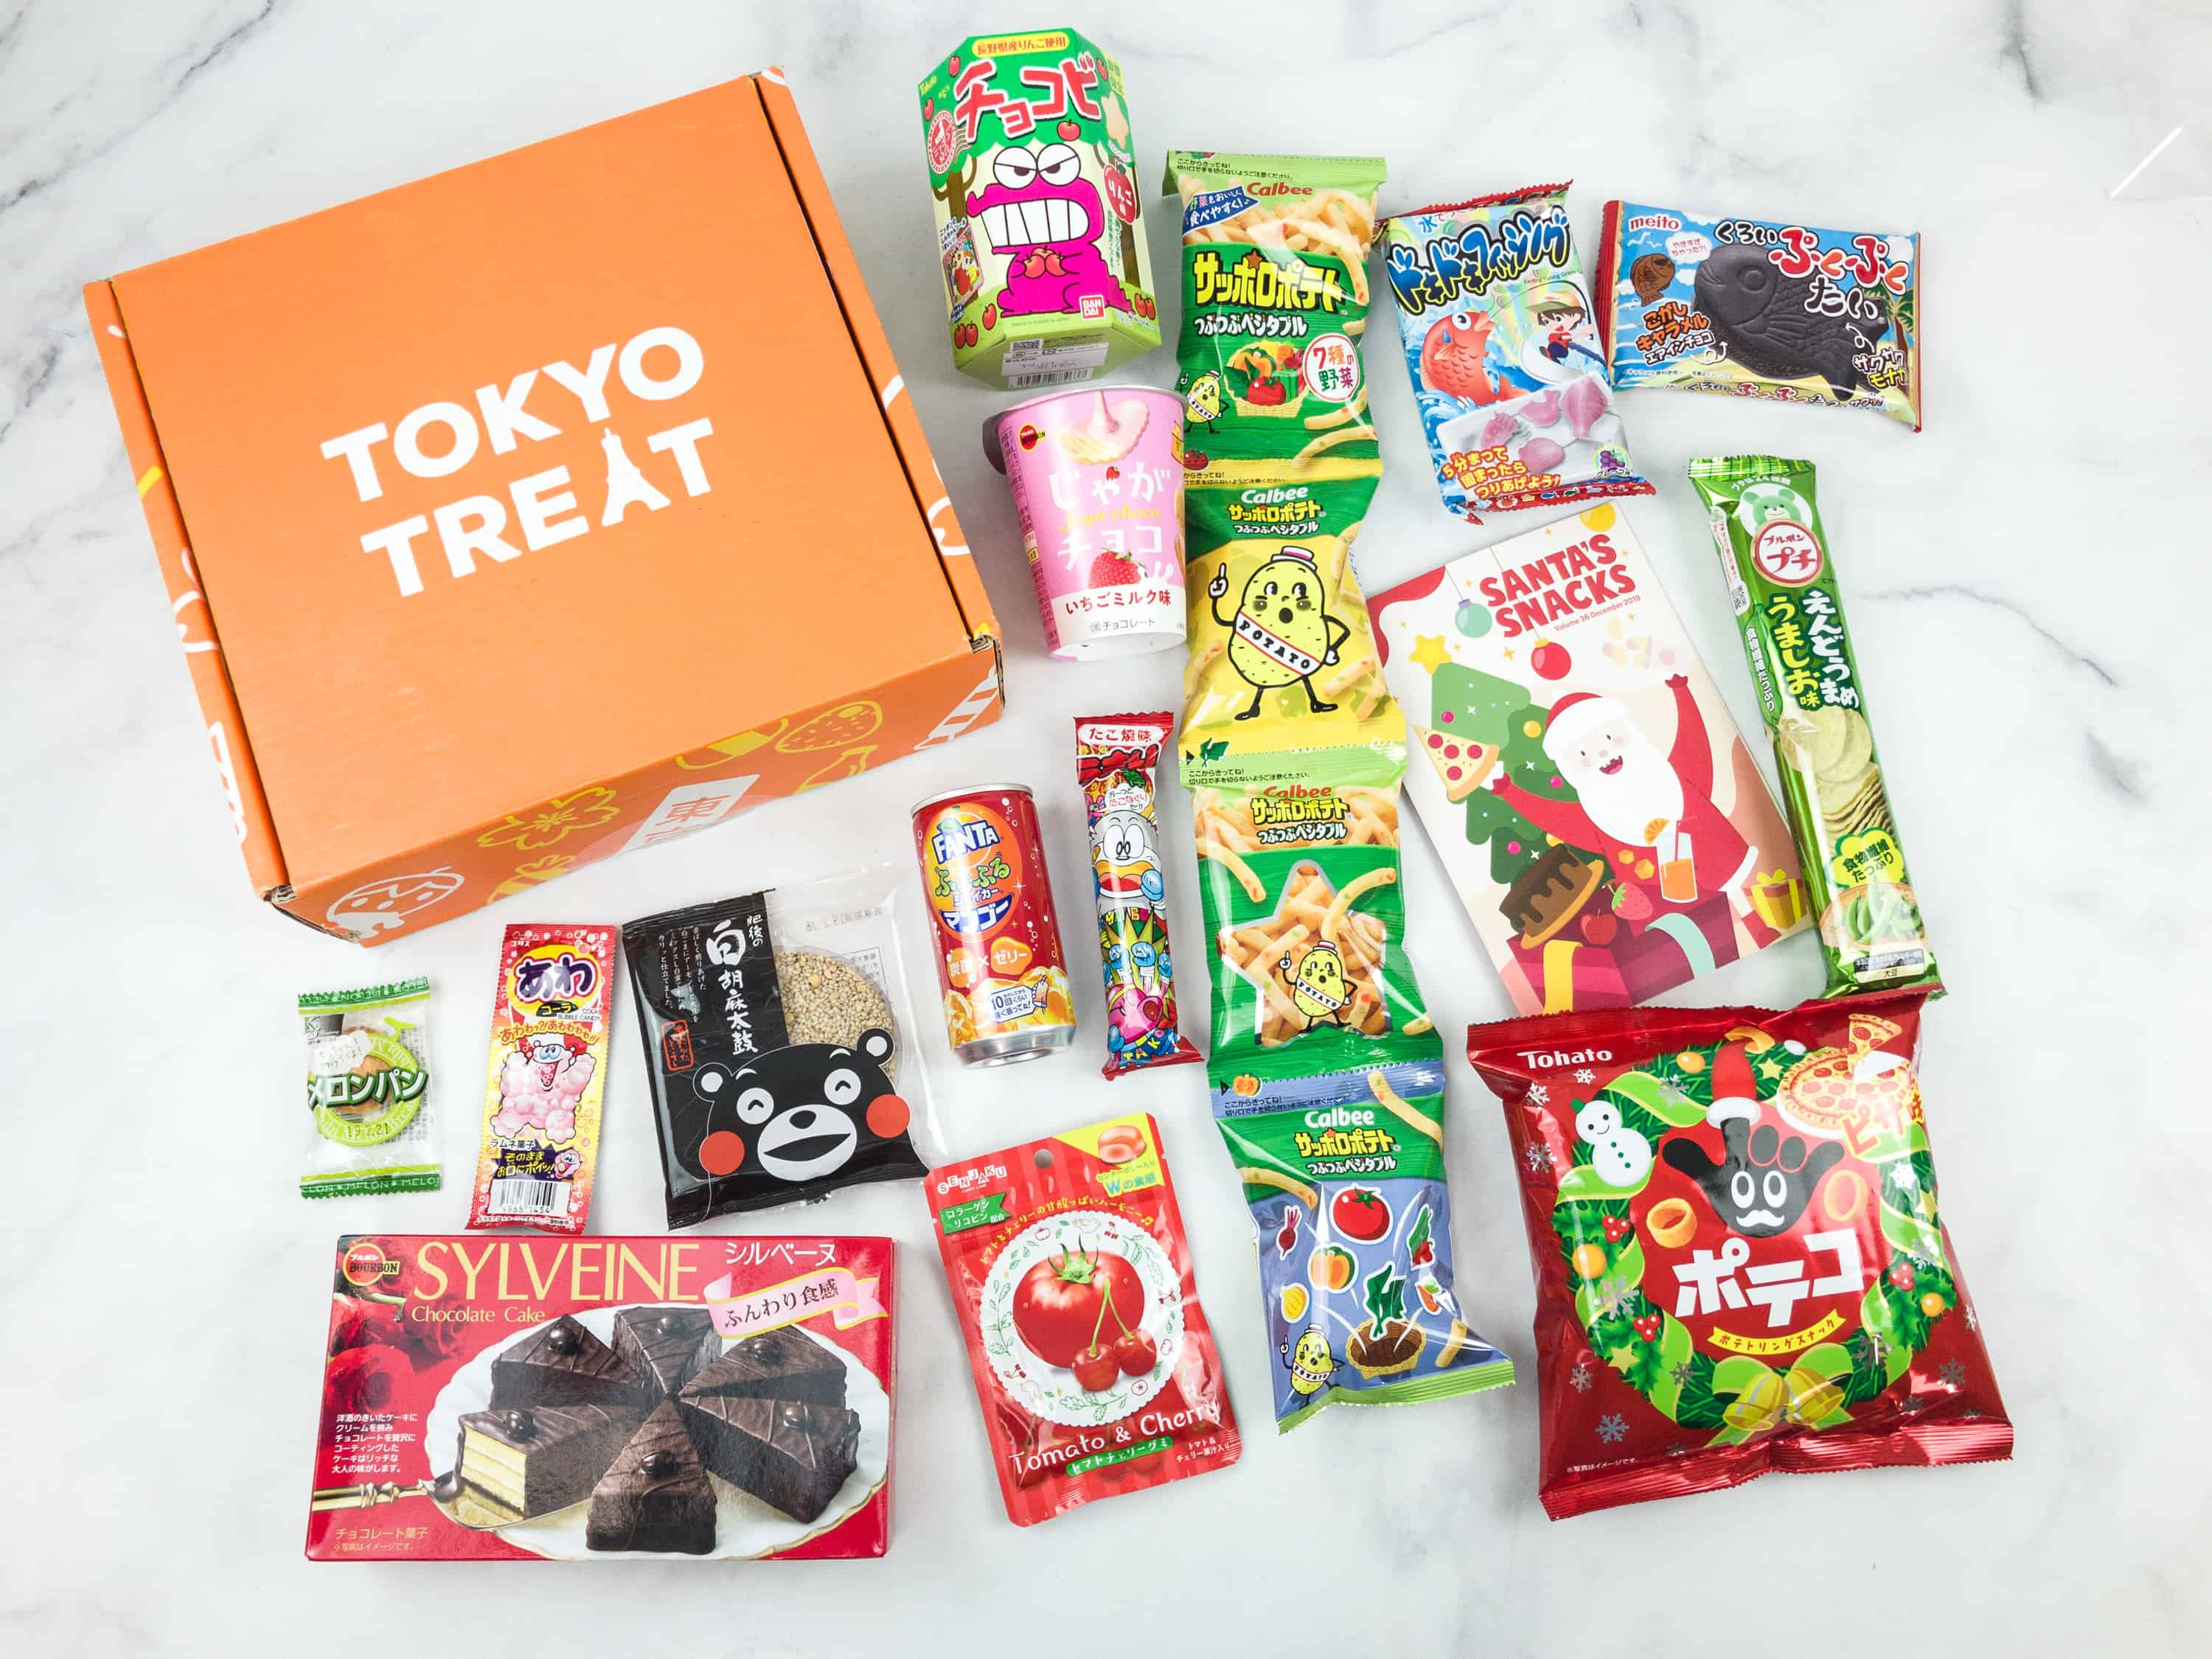 Tokyo Treat Cyber Monday Coupon – Get $5 Off on Your First Box!